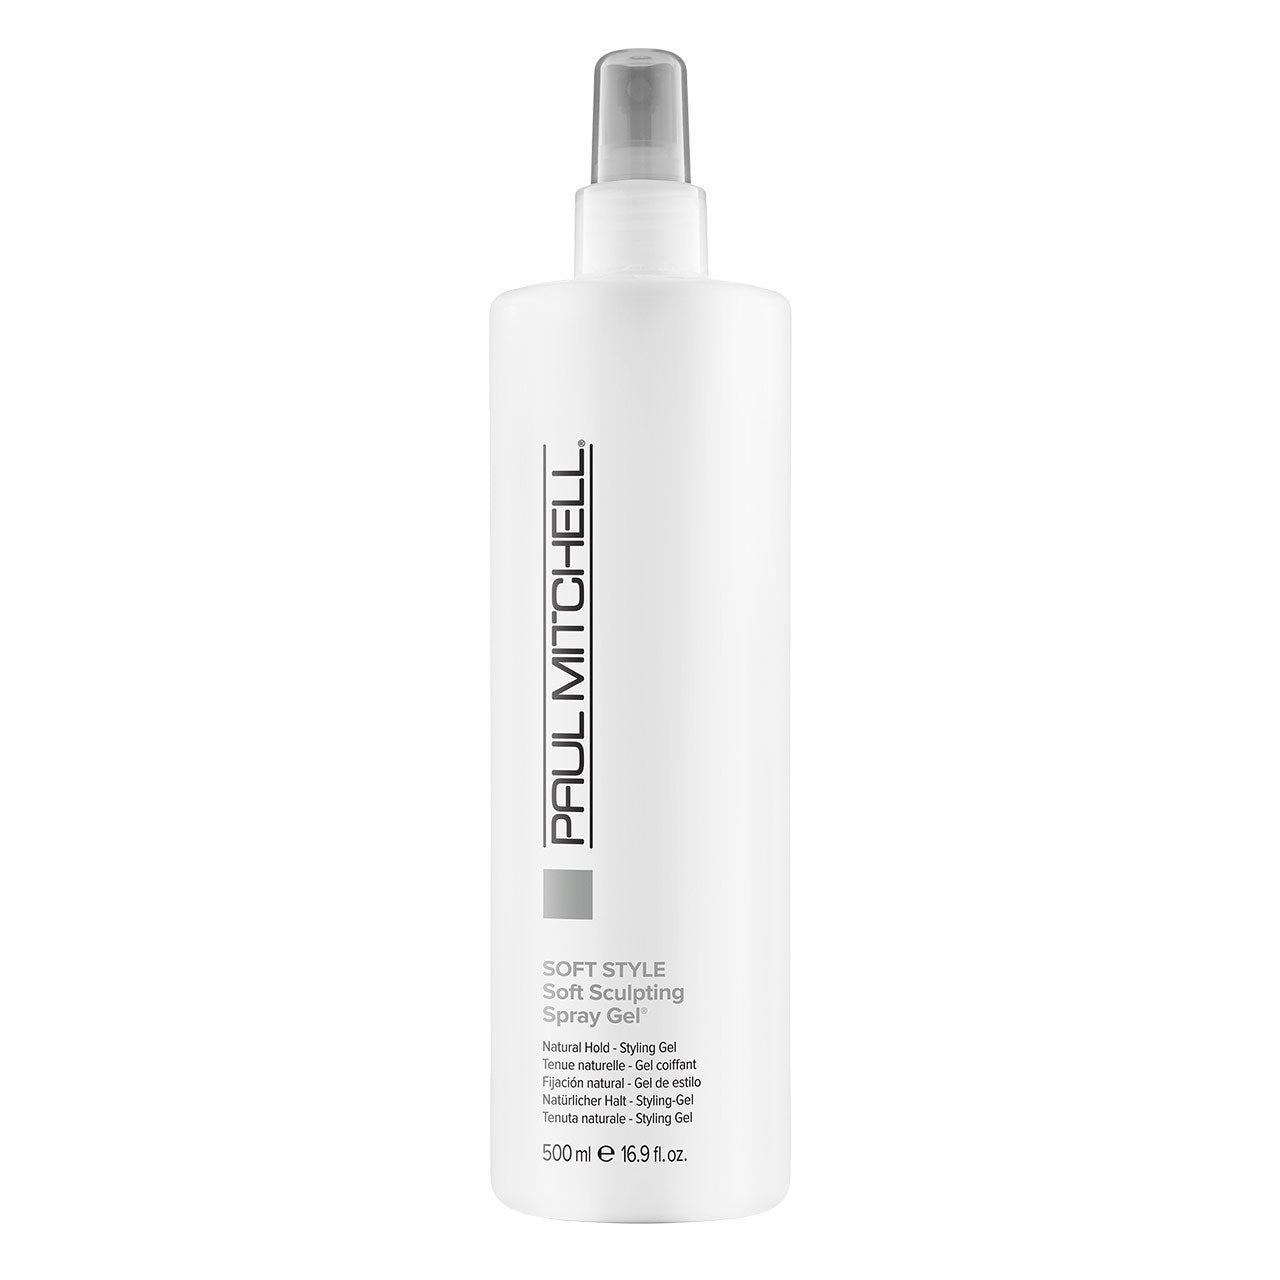 Paul Mitchell Soft Style Soft Sculpting Spray Gel 500ml